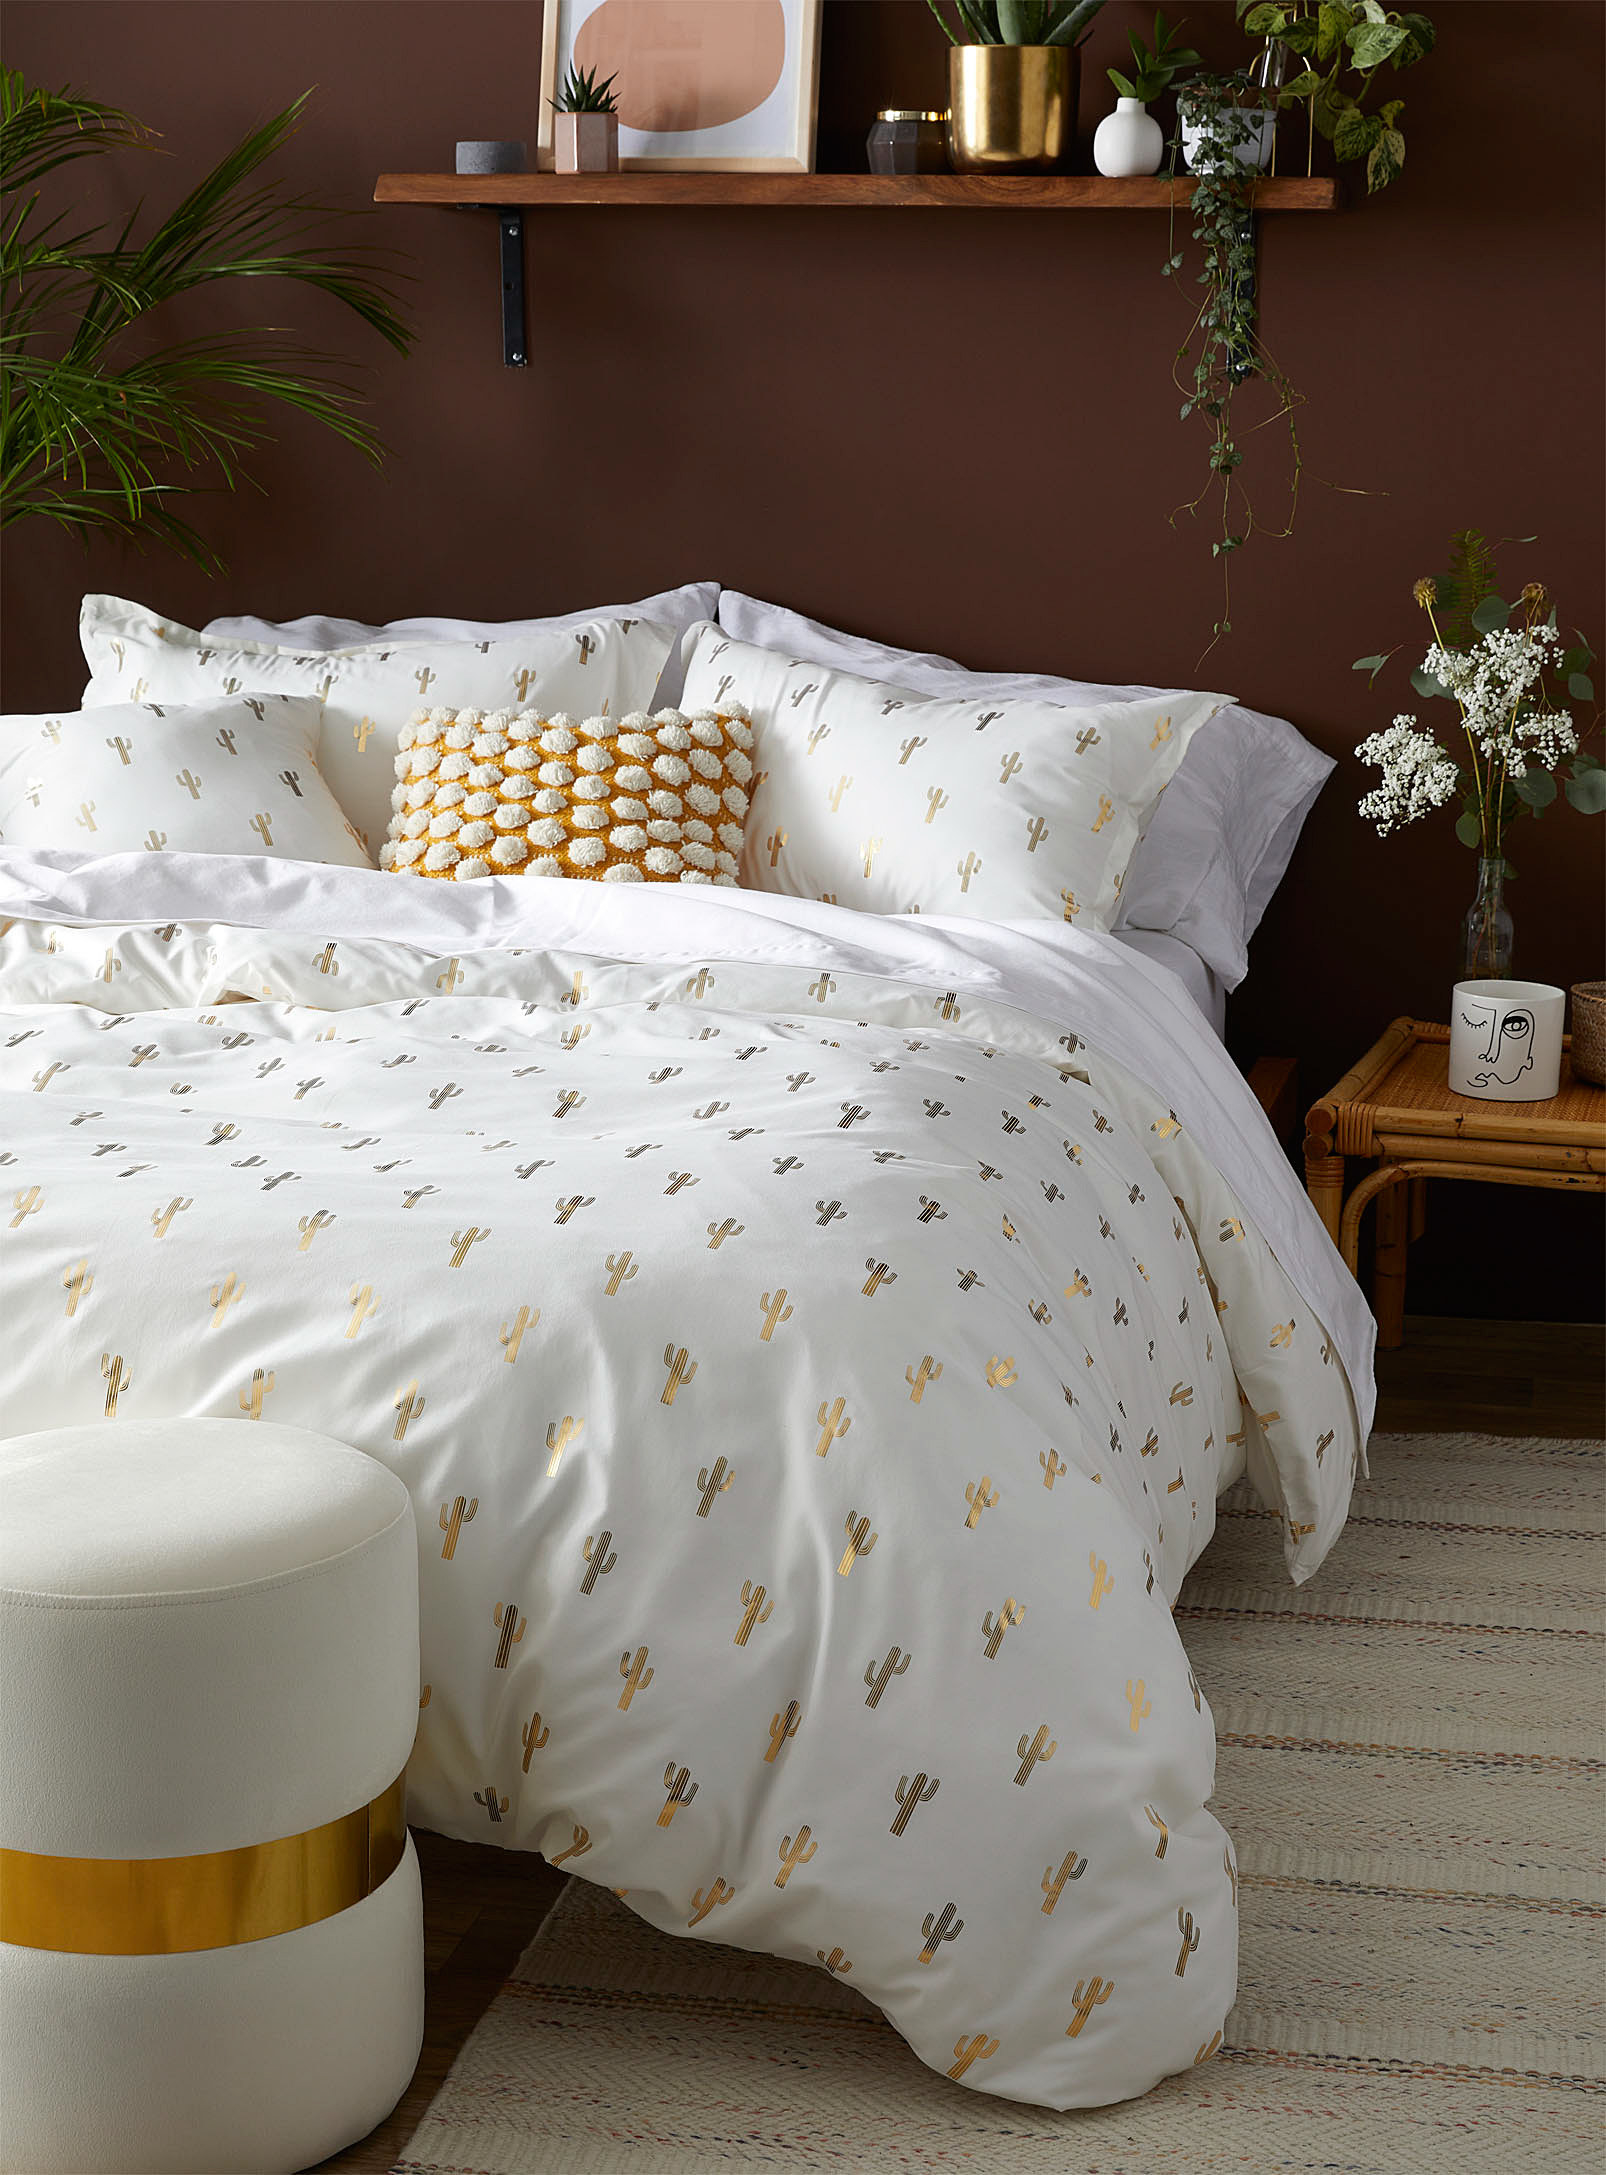 A thick duvet on a bed with pillows